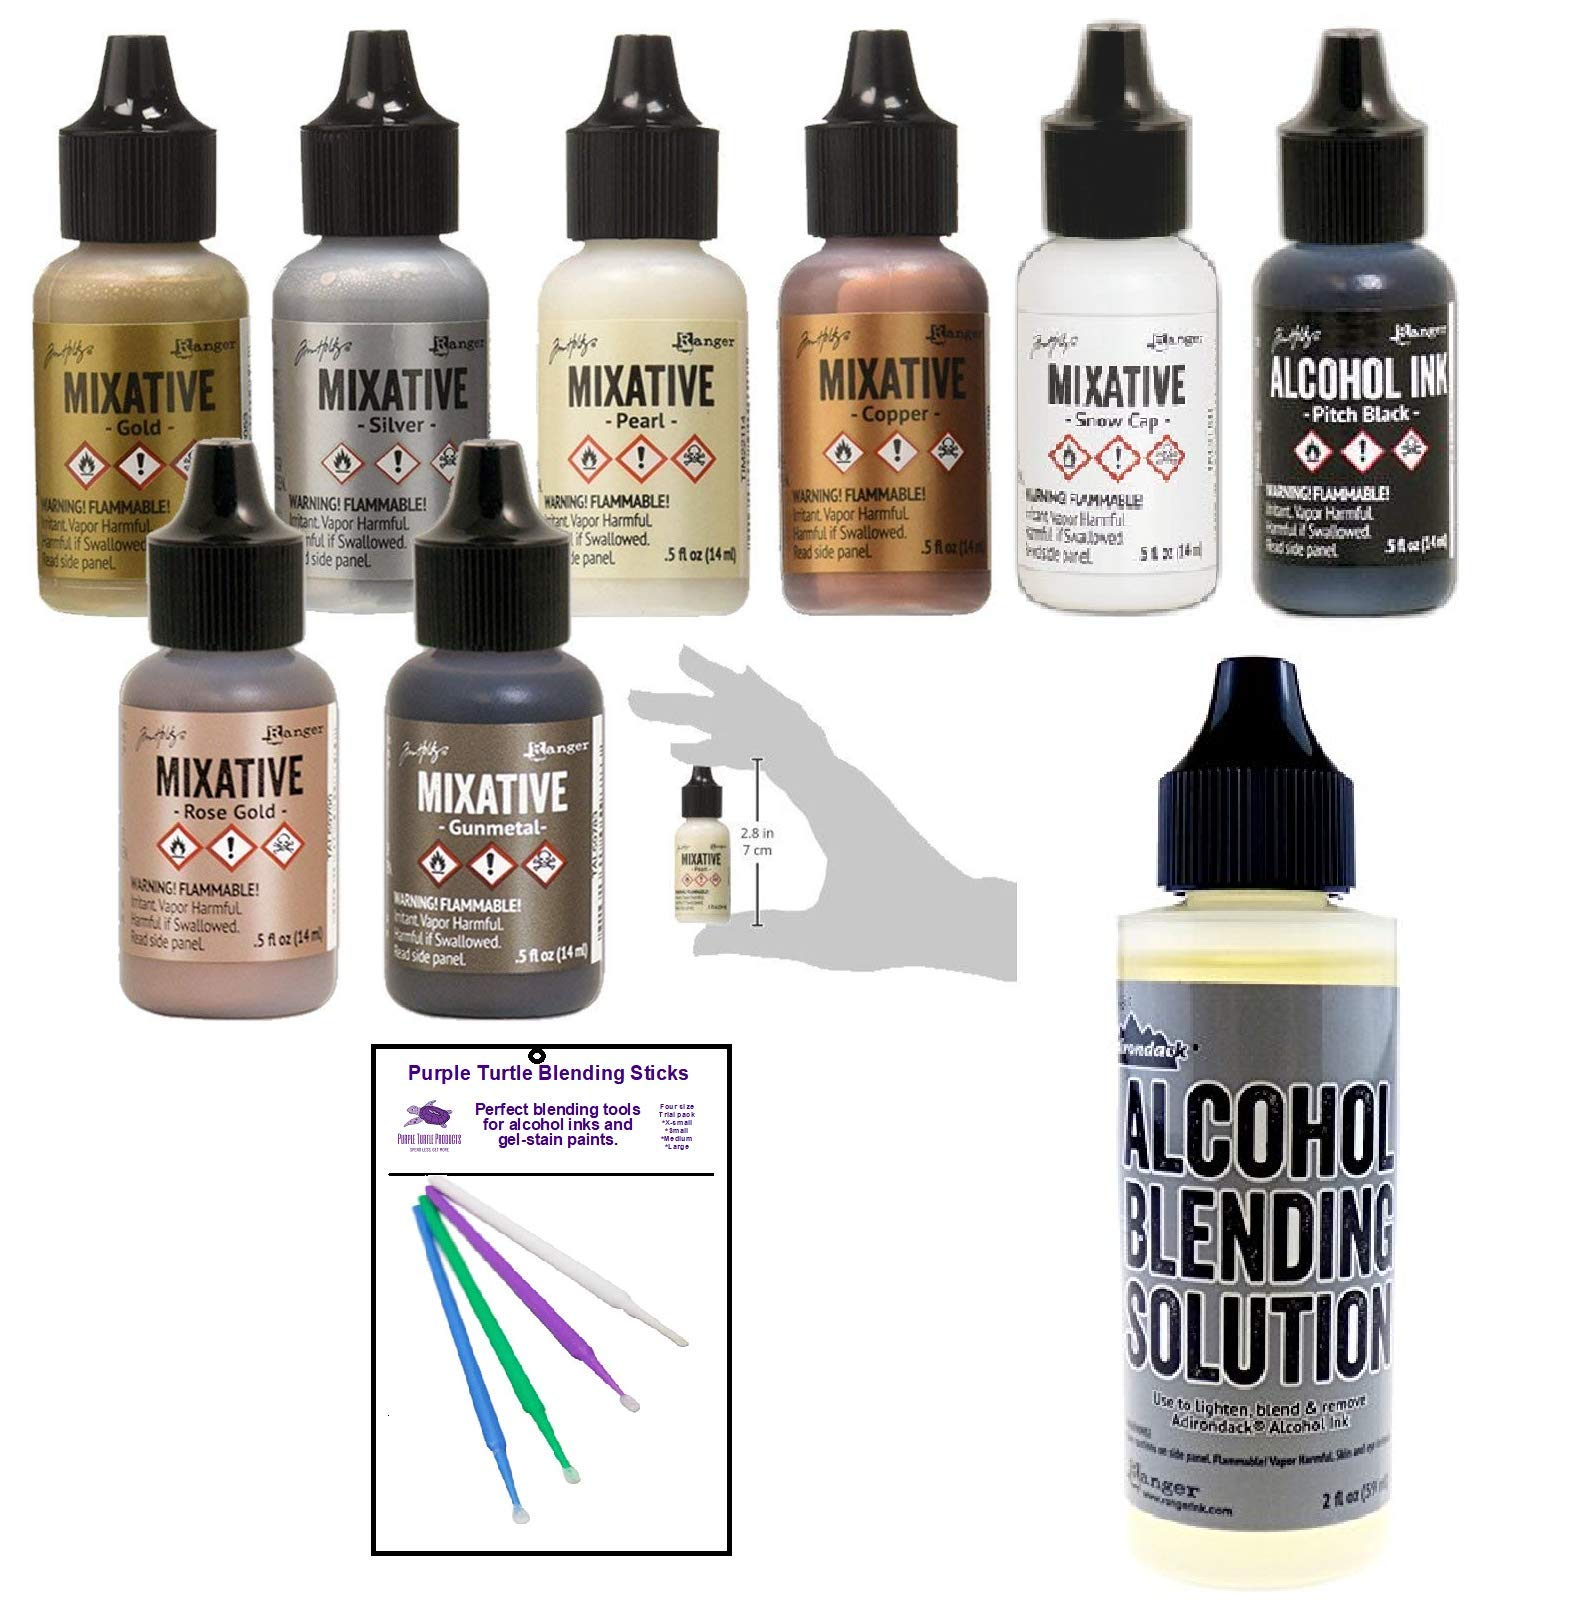 Ranger Tim Holtz Alcohol Ink Mixatives Bundle - All 8 Colors, Pearl, Copper, Silver, Gold, Snow Cap, Rose Gold, Gunmetal, Pitch Black, Blending Tools and Alcohol Solution by Purple Turtle Products